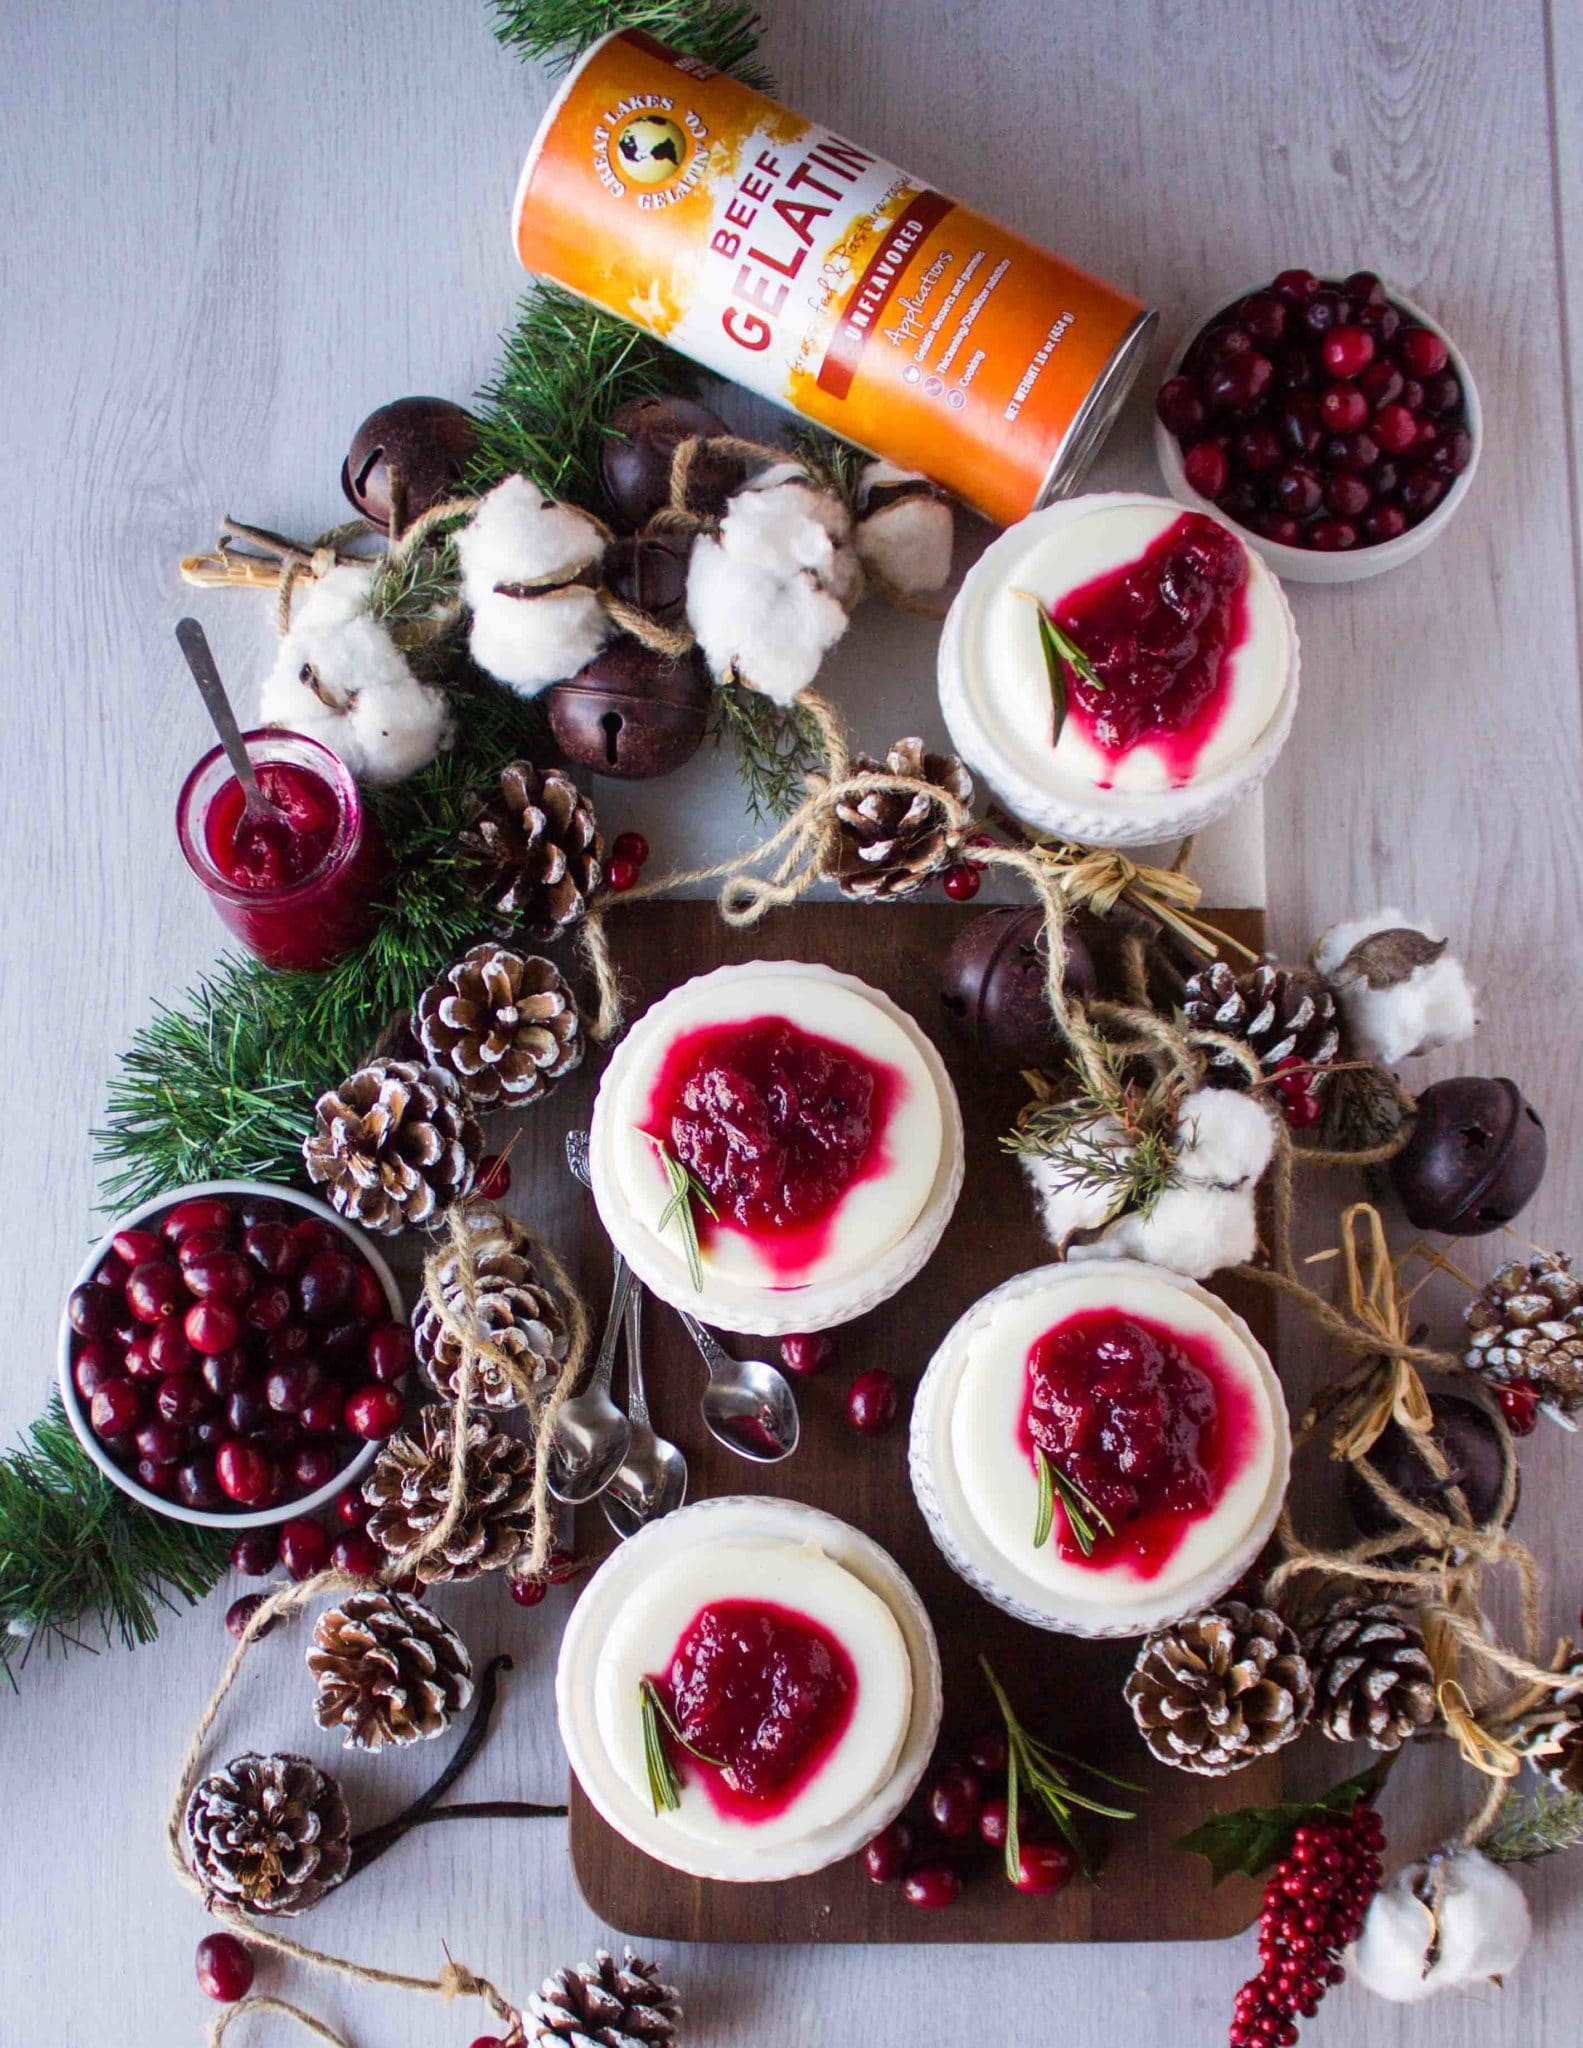 top view of a holiday dessert with tree cones, fresh cranberries and rosemary and 4 panna cotta desserts on serving plates with gelatin